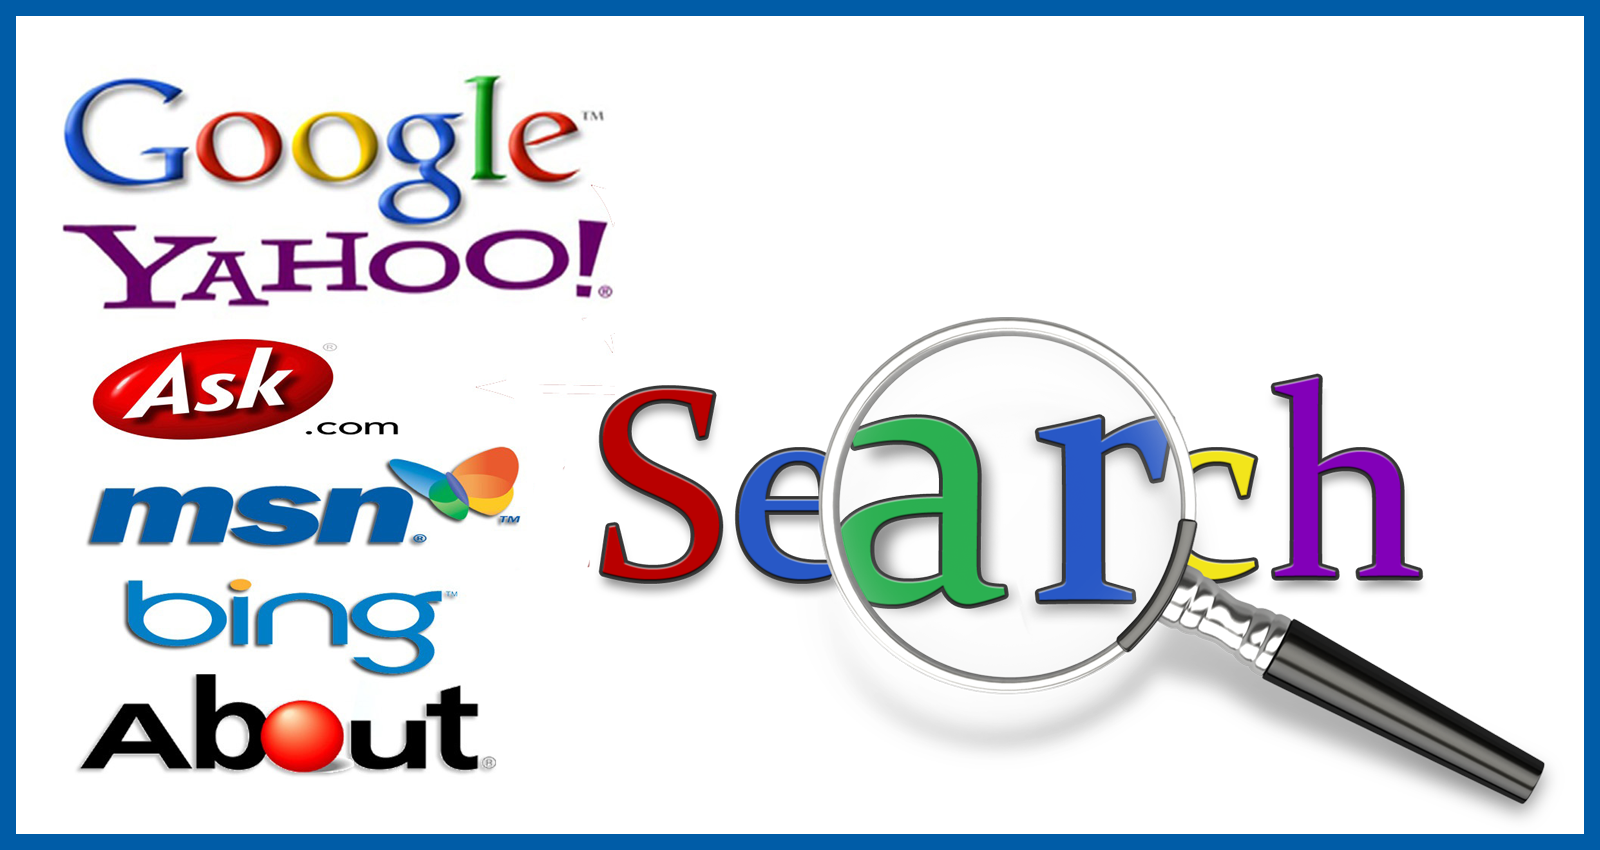 What is Search Engine & Browser? - Gowdham Subramaniam - Medium